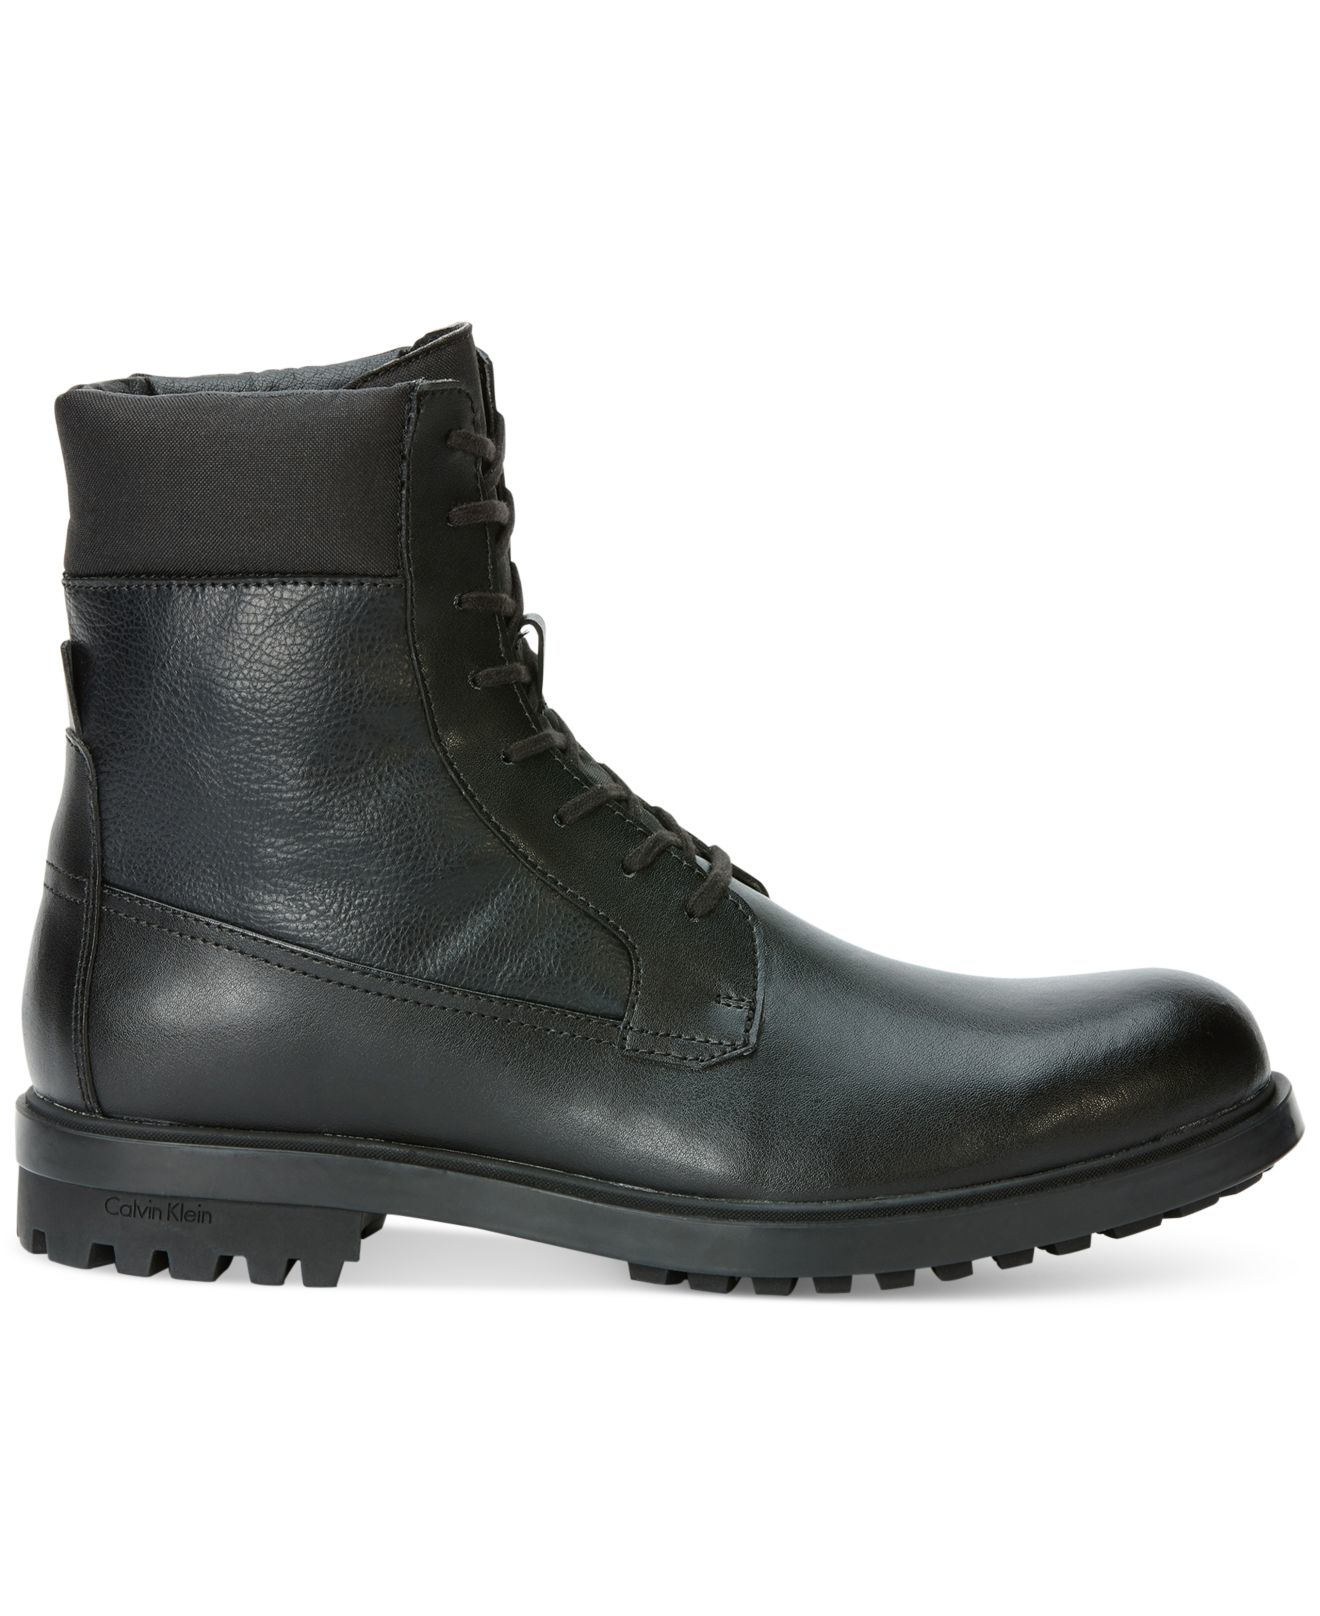 bba366c9c42 Lyst - Calvin Klein Gable Boots in Black for Men